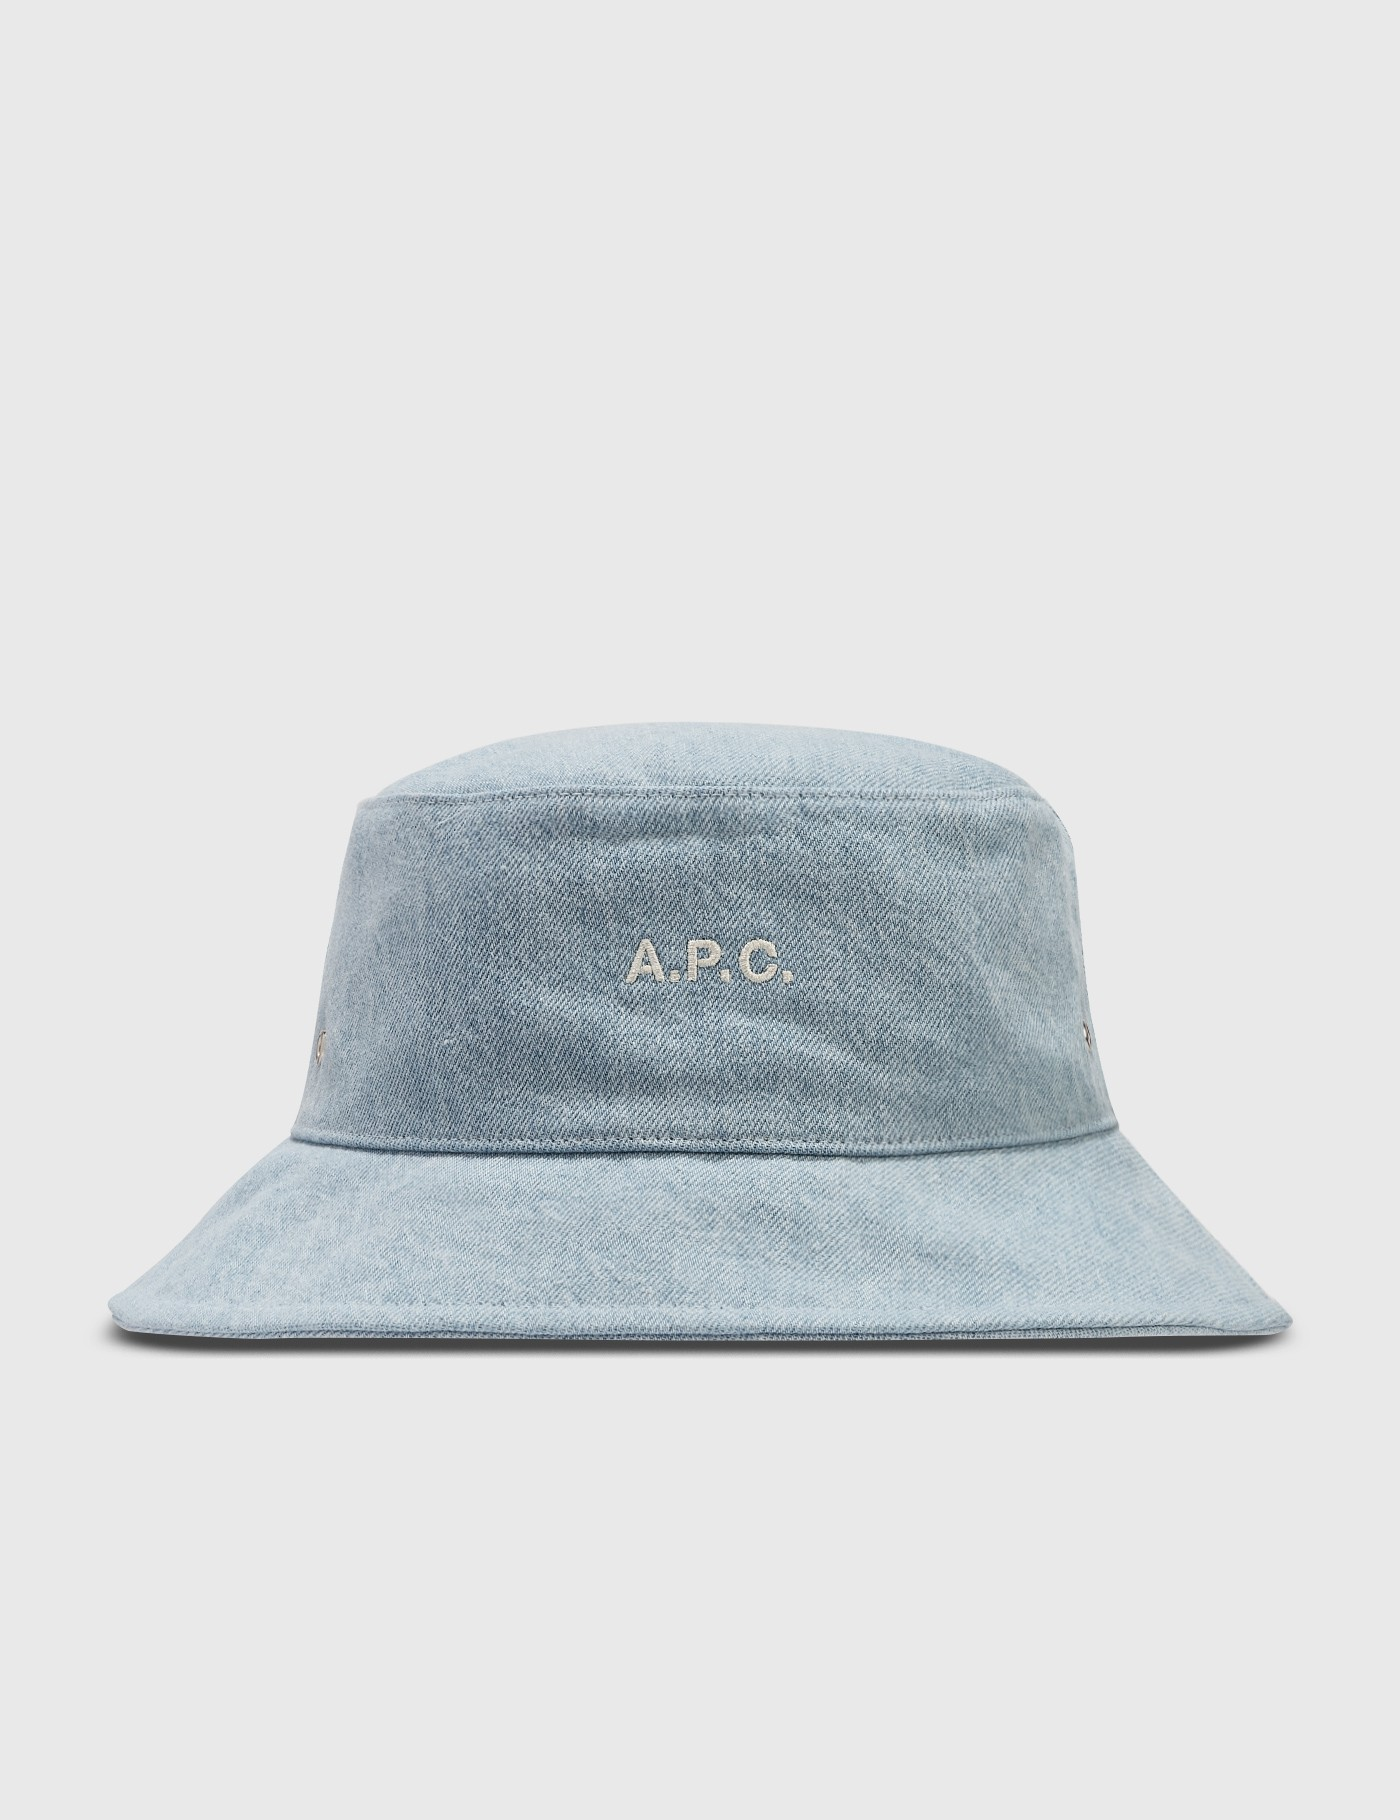 A.p.c. ALEX BUCKET HAT